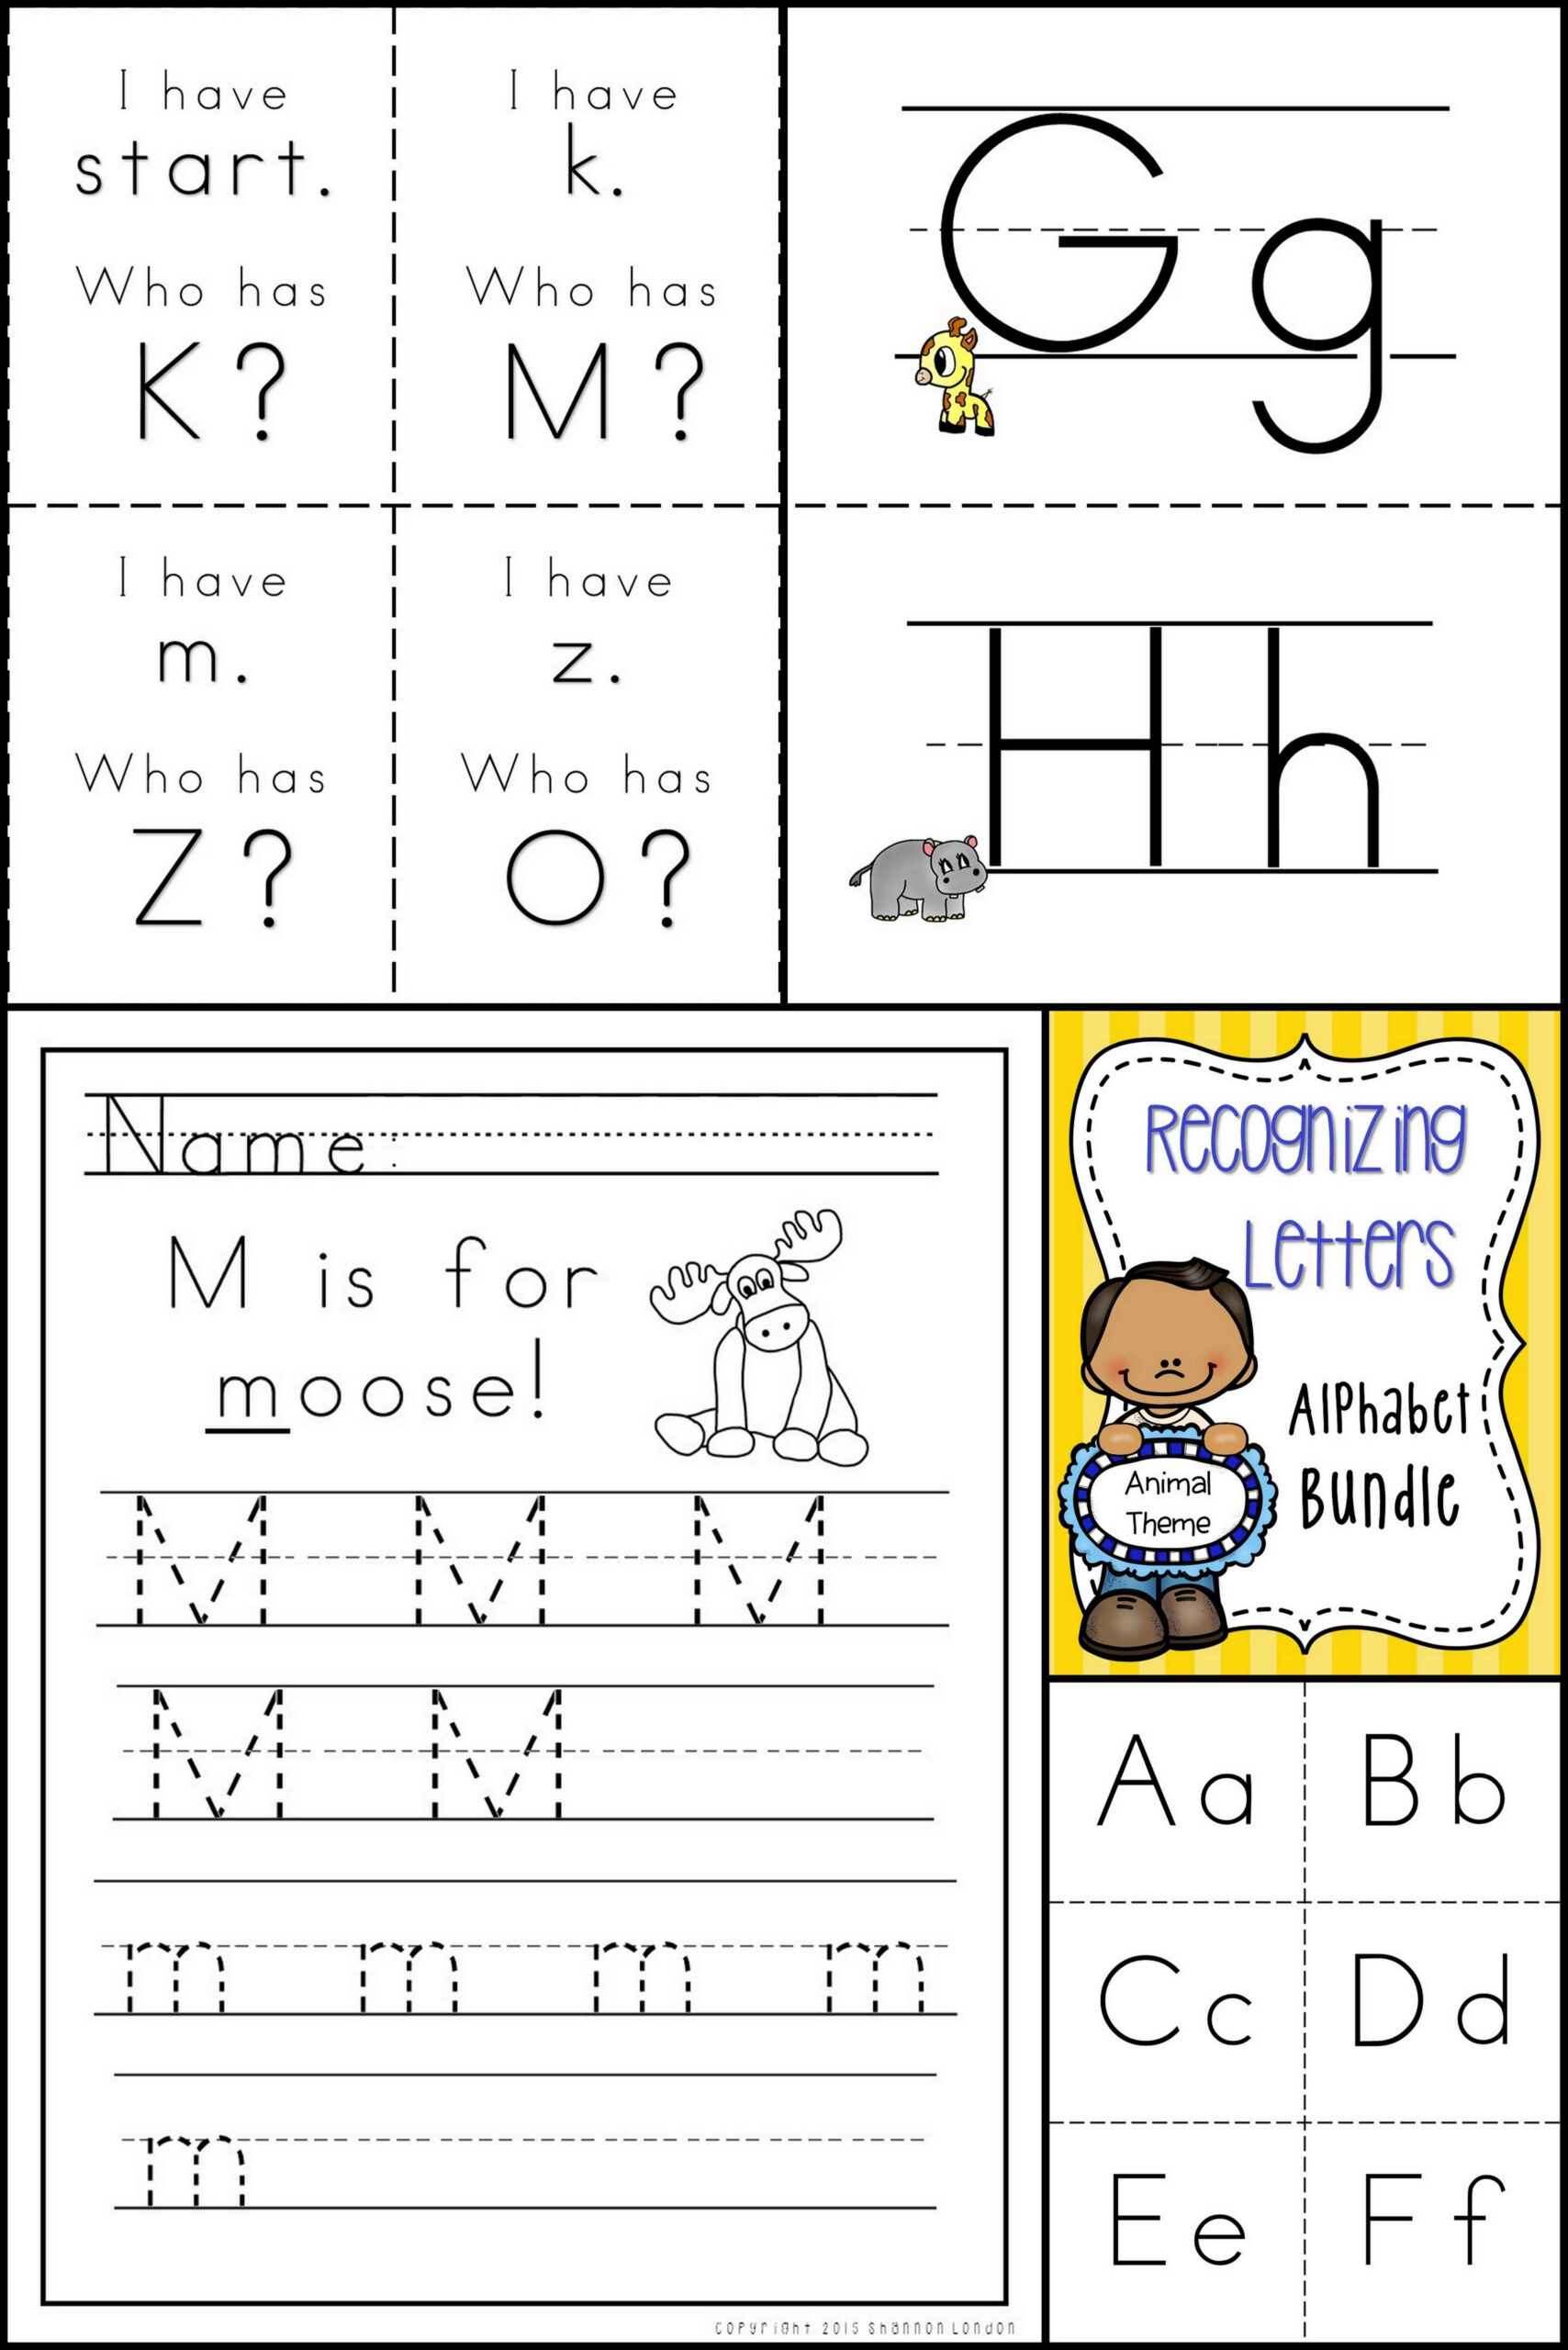 Now I Know My Abc's - Alphabet Handwriting, Flashcards, And for Alphabet Worksheets For Special Needs